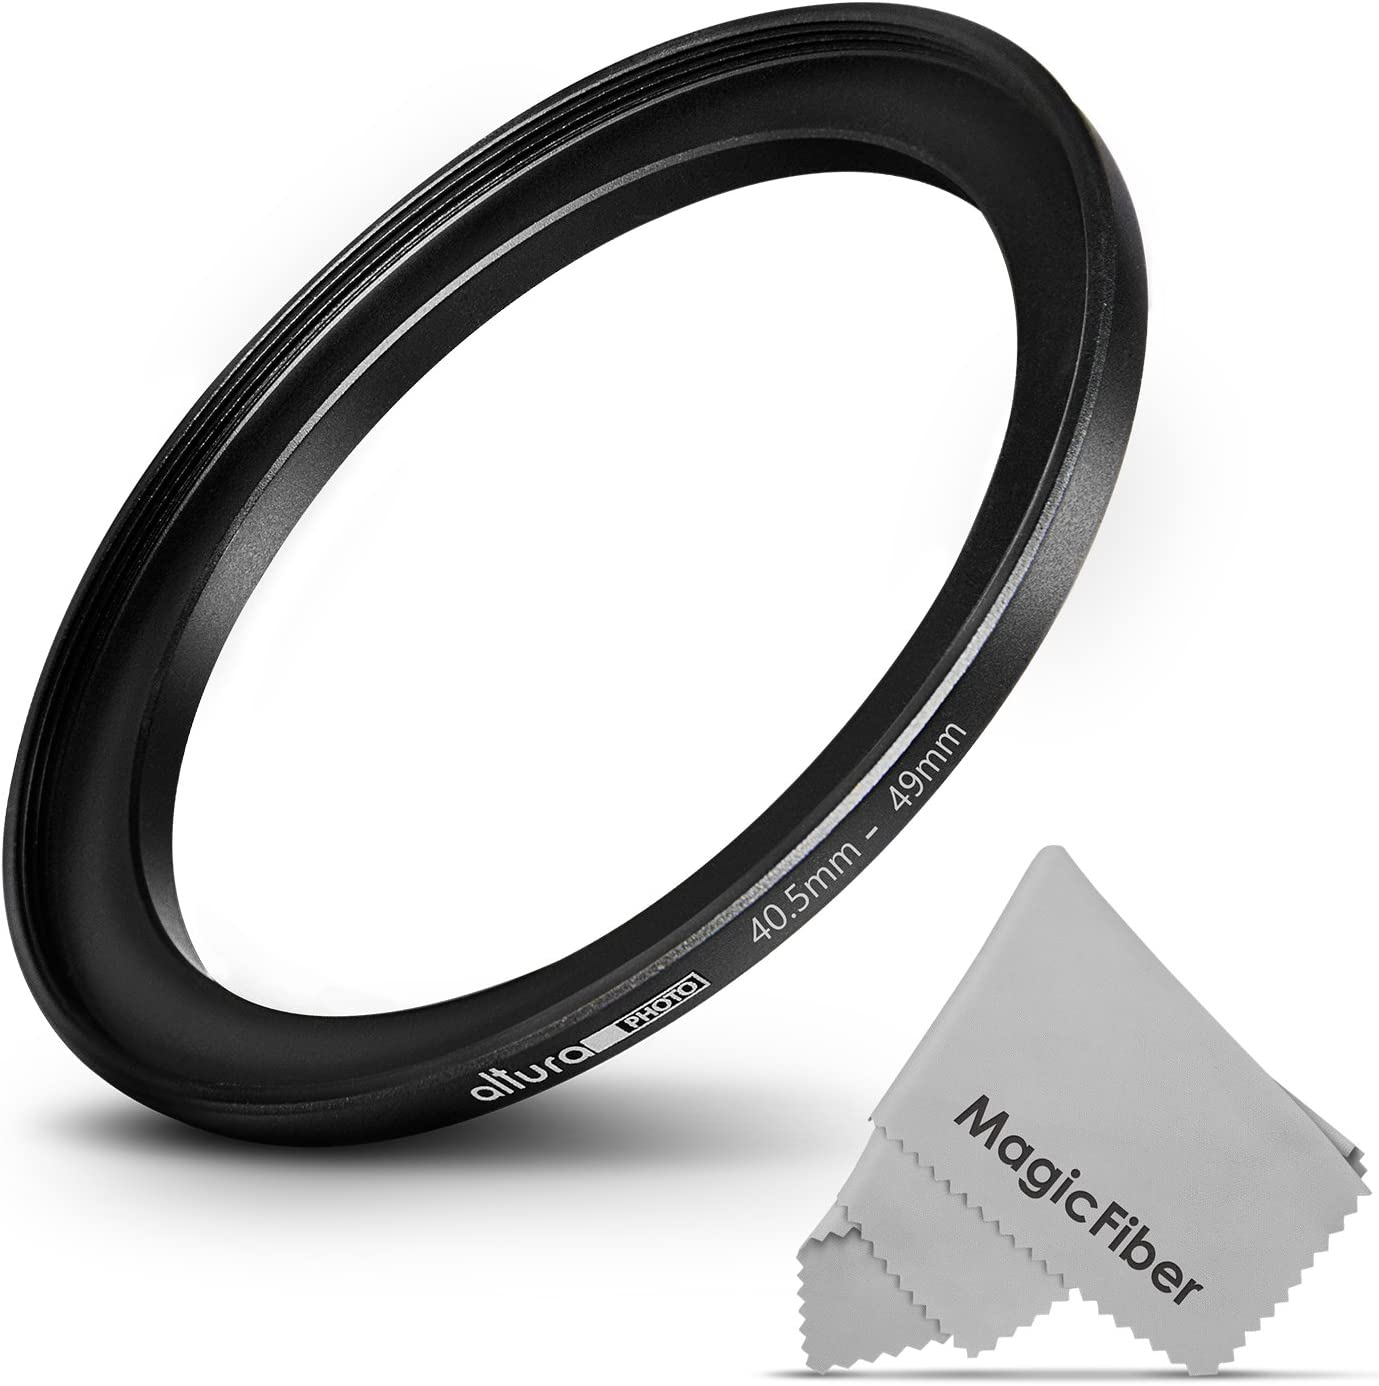 Sensei 40.5mm Lens to 55mm Filter Step-Up Ring 3 Pack